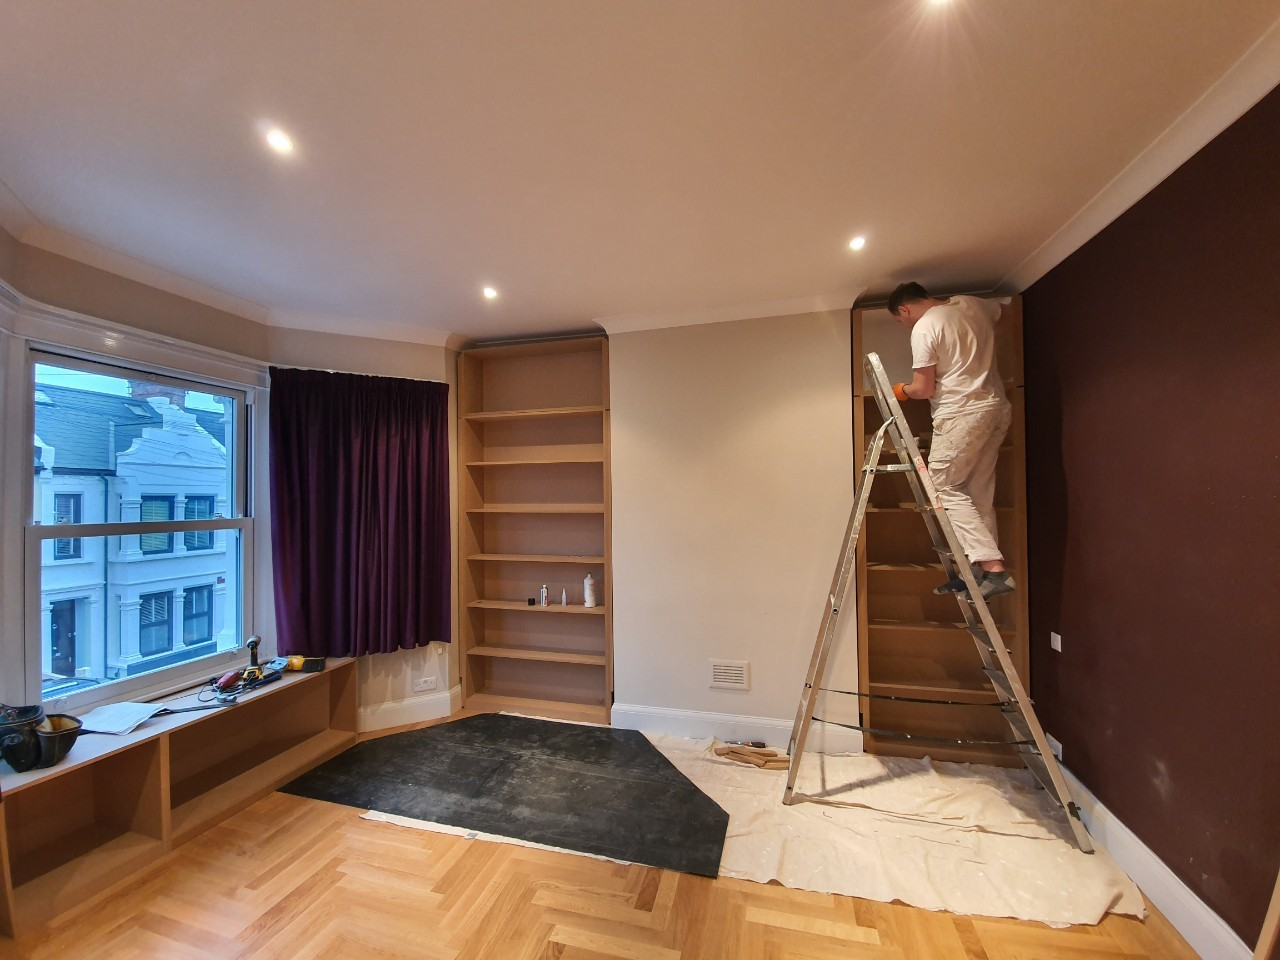 installation and painting of the fitted wardrobes